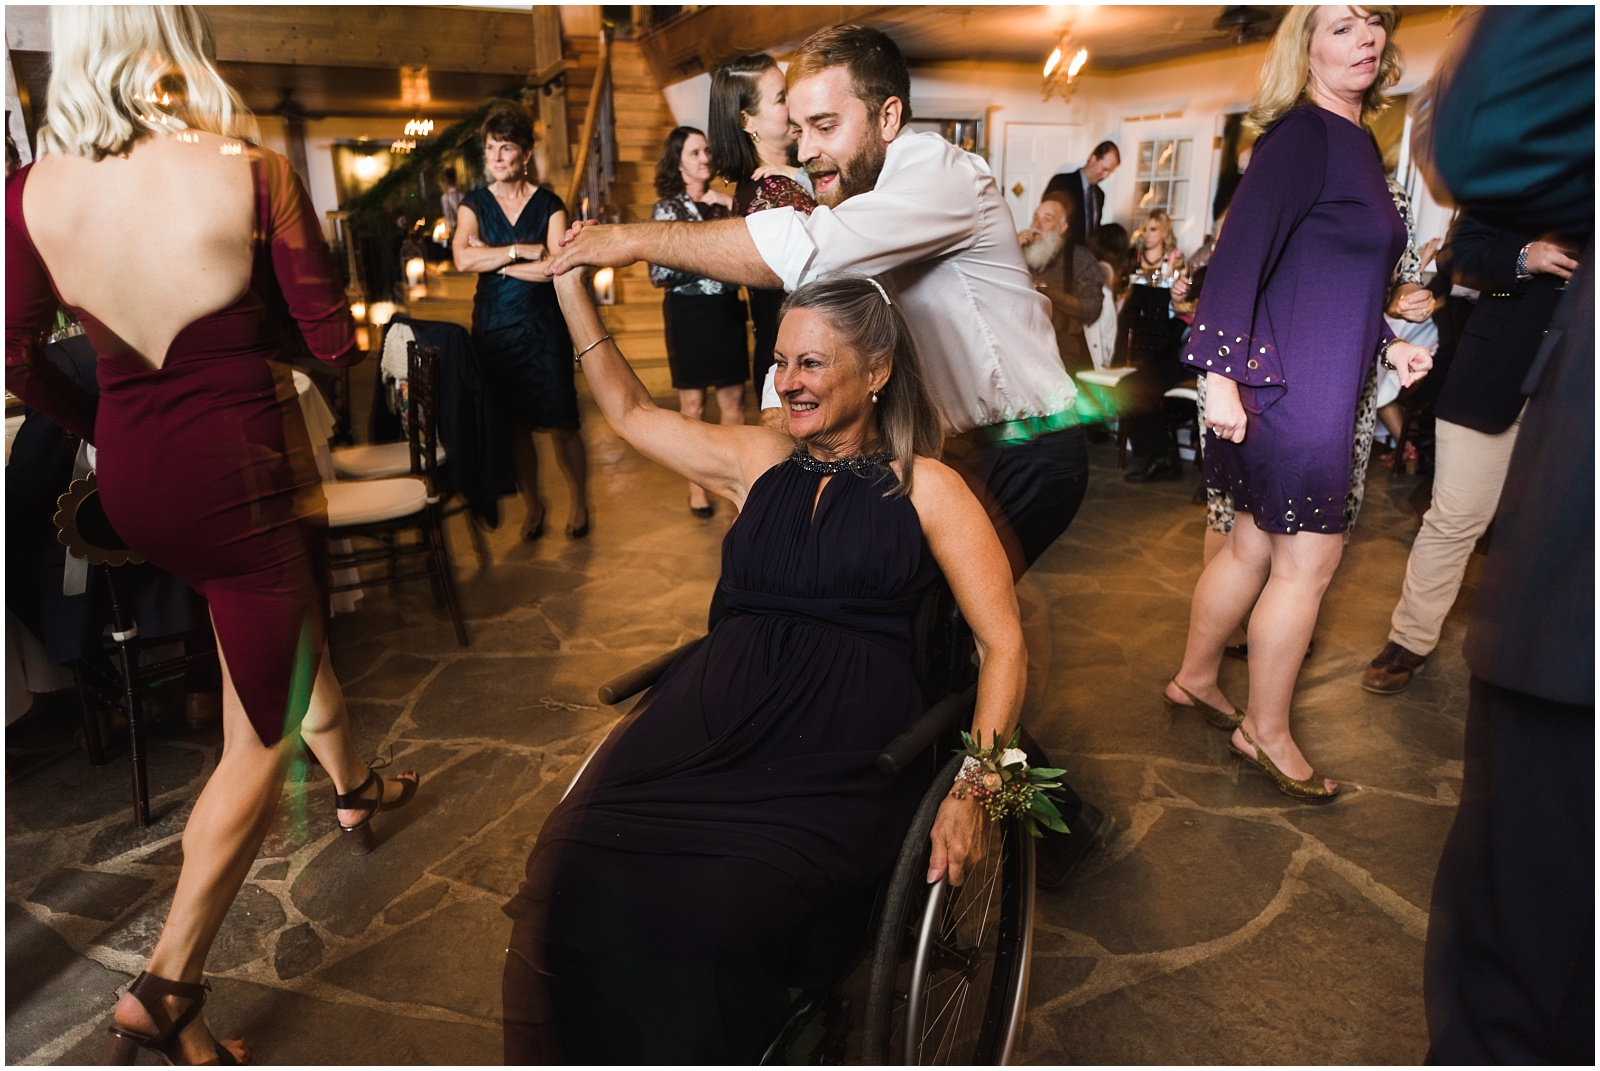 Best Mother dancing picture